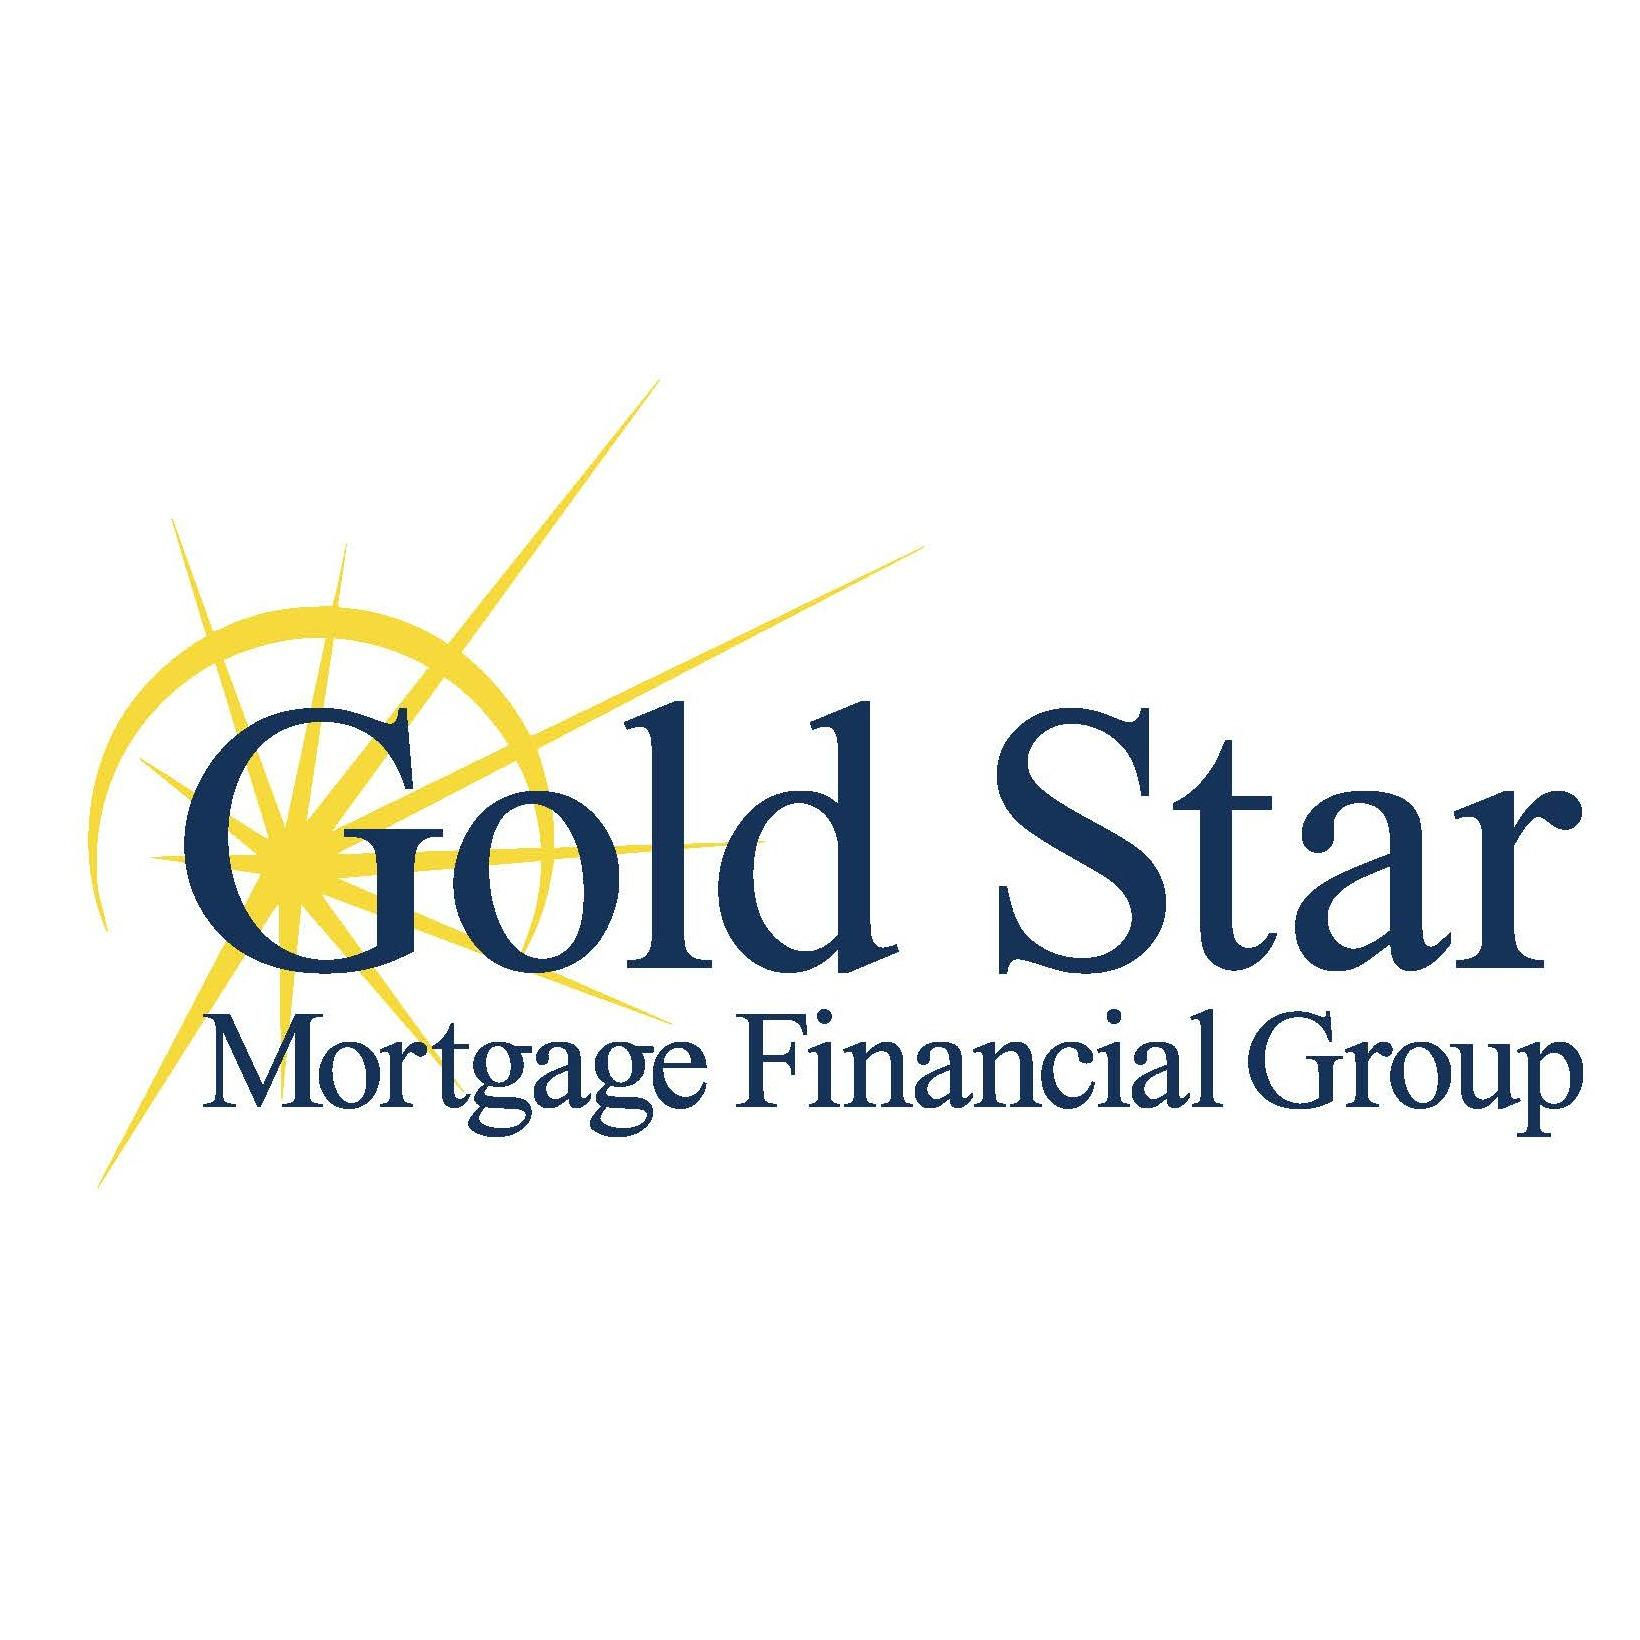 Melissa Guthrie - Gold Star Mortgage Financial Group Corp